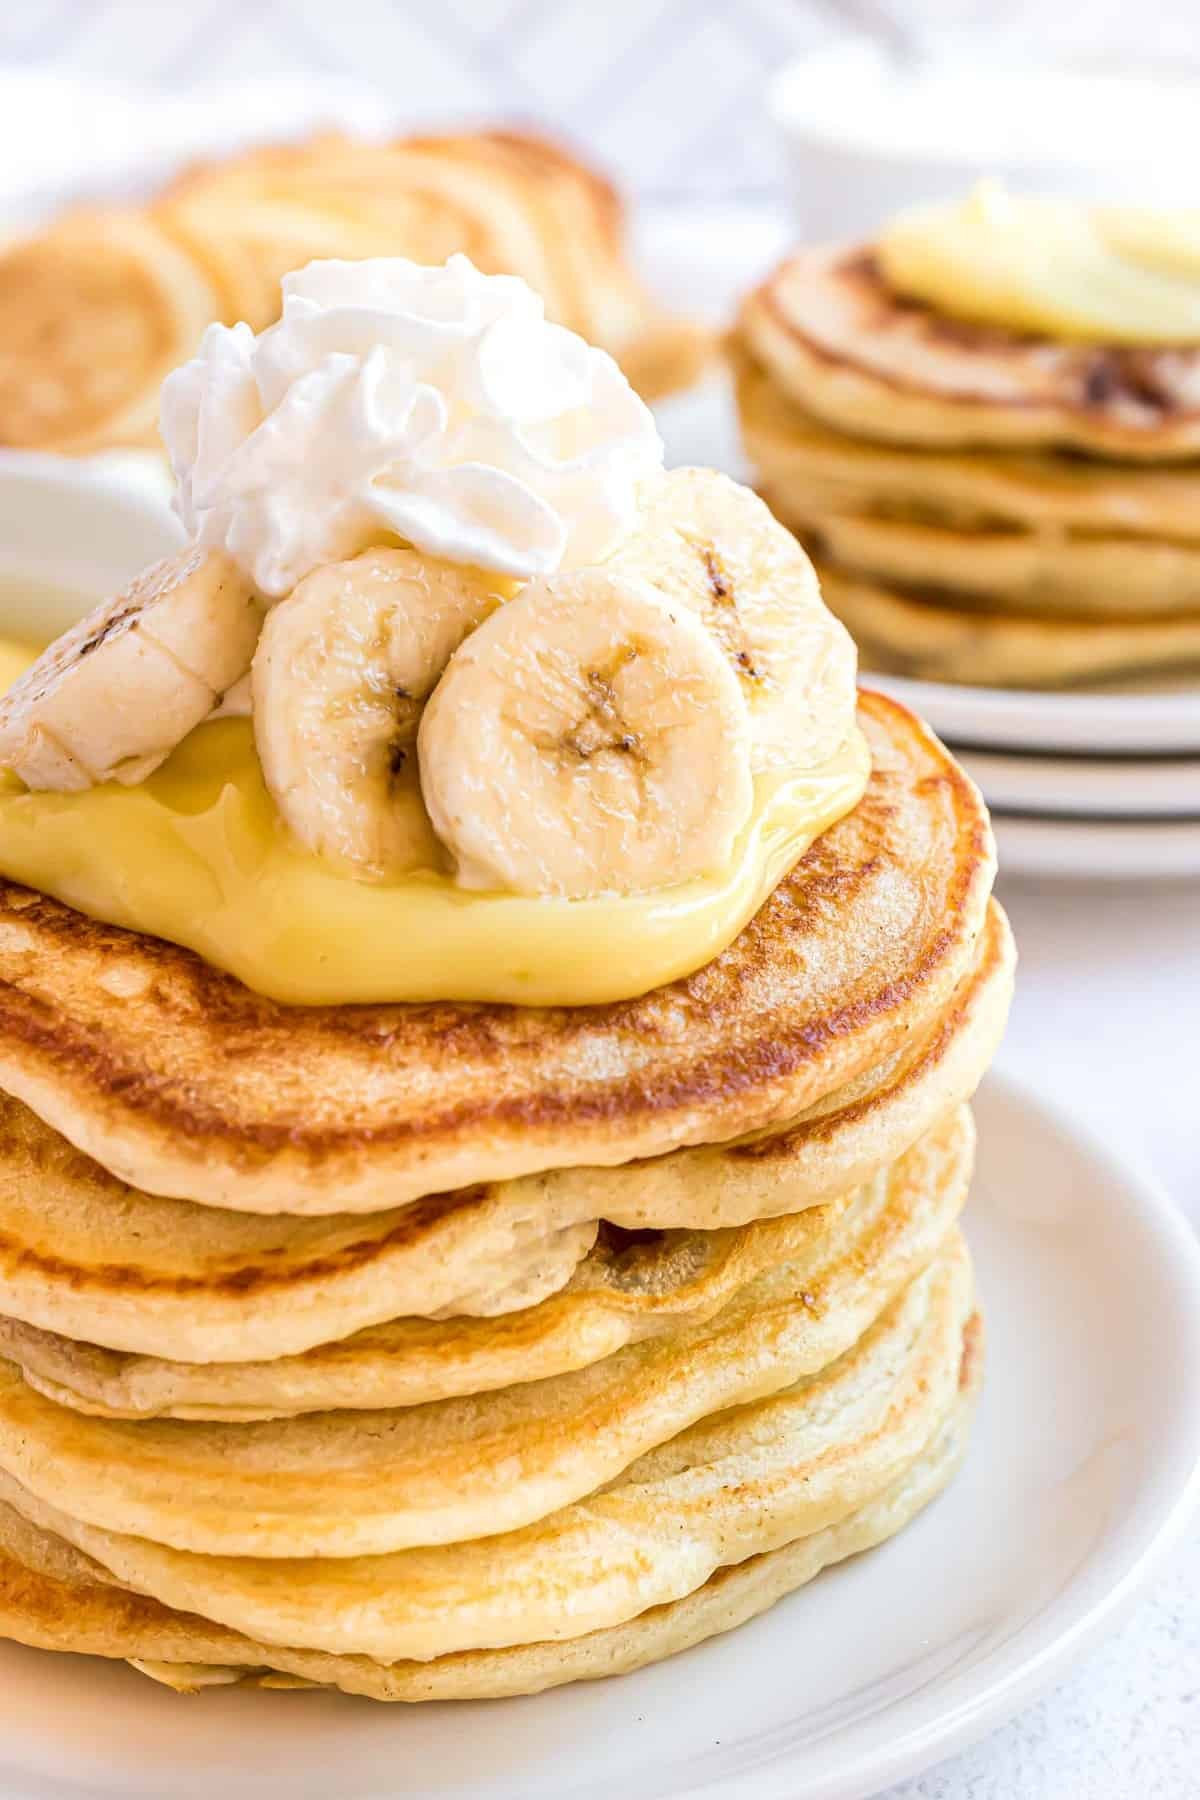 Close up of pancake stack topped with pudding, whipped cream, and bananas.